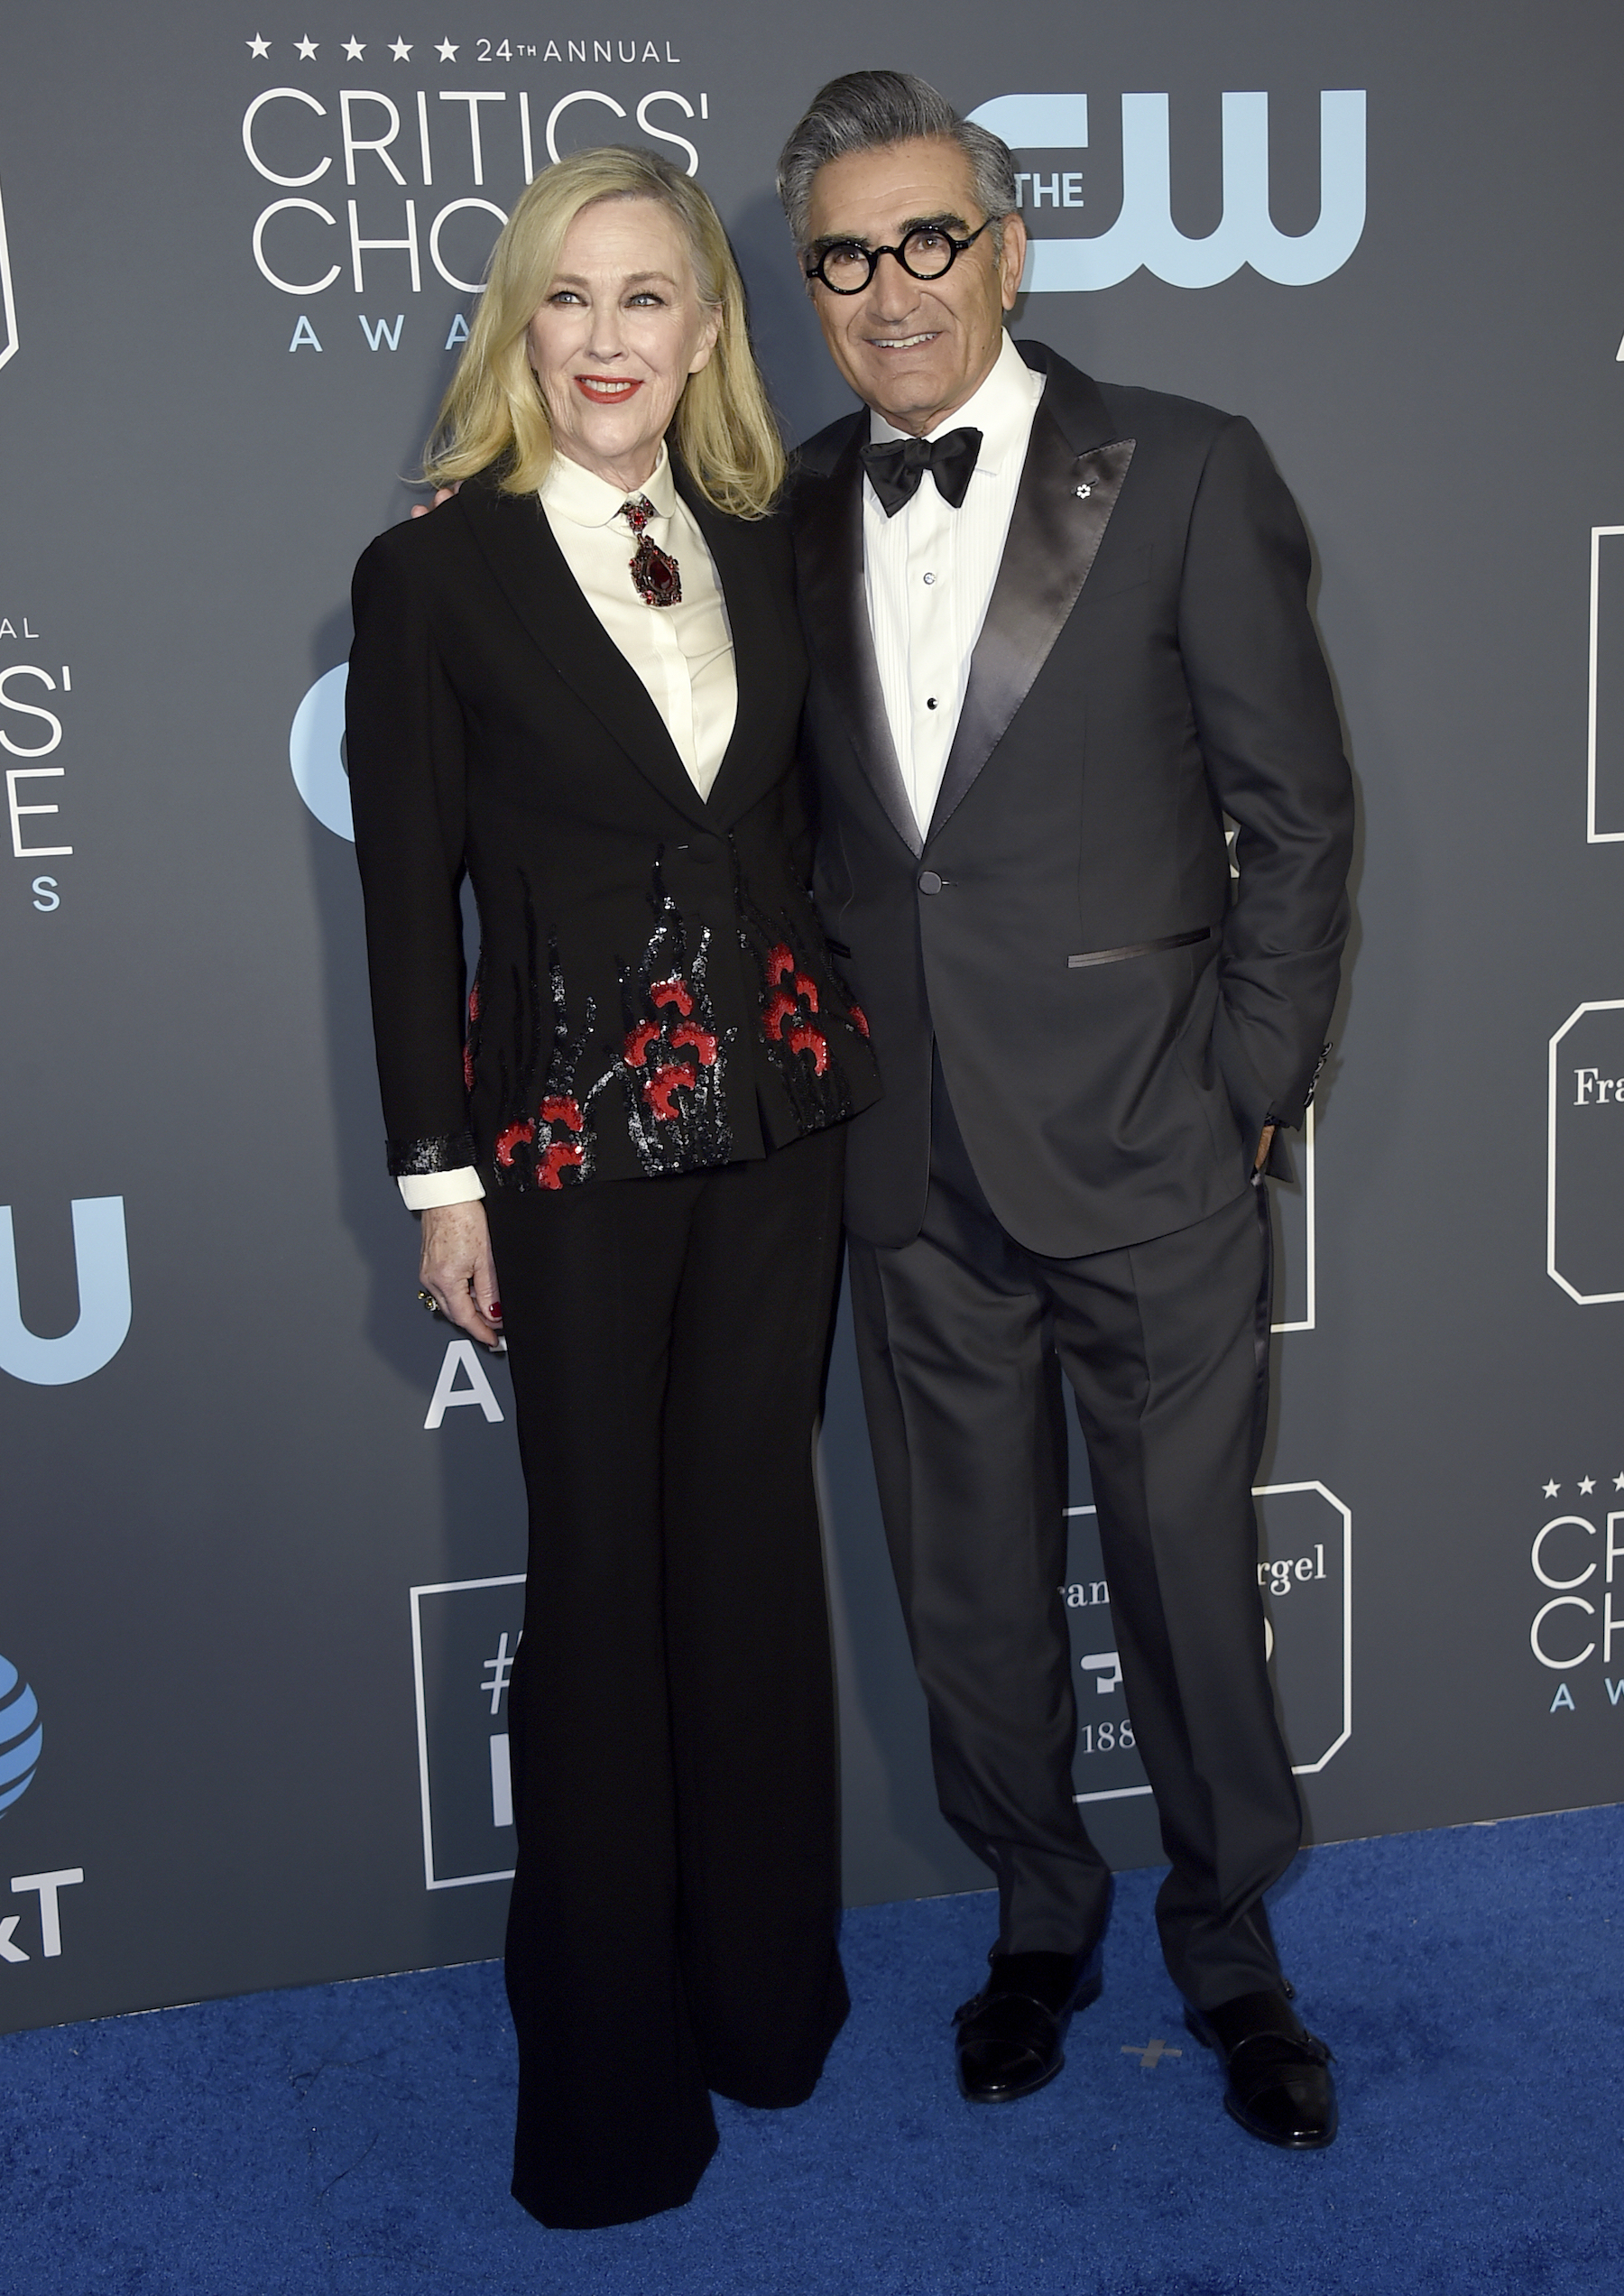 "<div class=""meta image-caption""><div class=""origin-logo origin-image ap""><span>AP</span></div><span class=""caption-text"">Catherine O'Hara, left, and Eugene Levy arrive at the 24th annual Critics' Choice Awards on Sunday, Jan. 13, 2019, at the Barker Hangar in Santa Monica, Calif. (Jordan Strauss/Invision/AP)</span></div>"